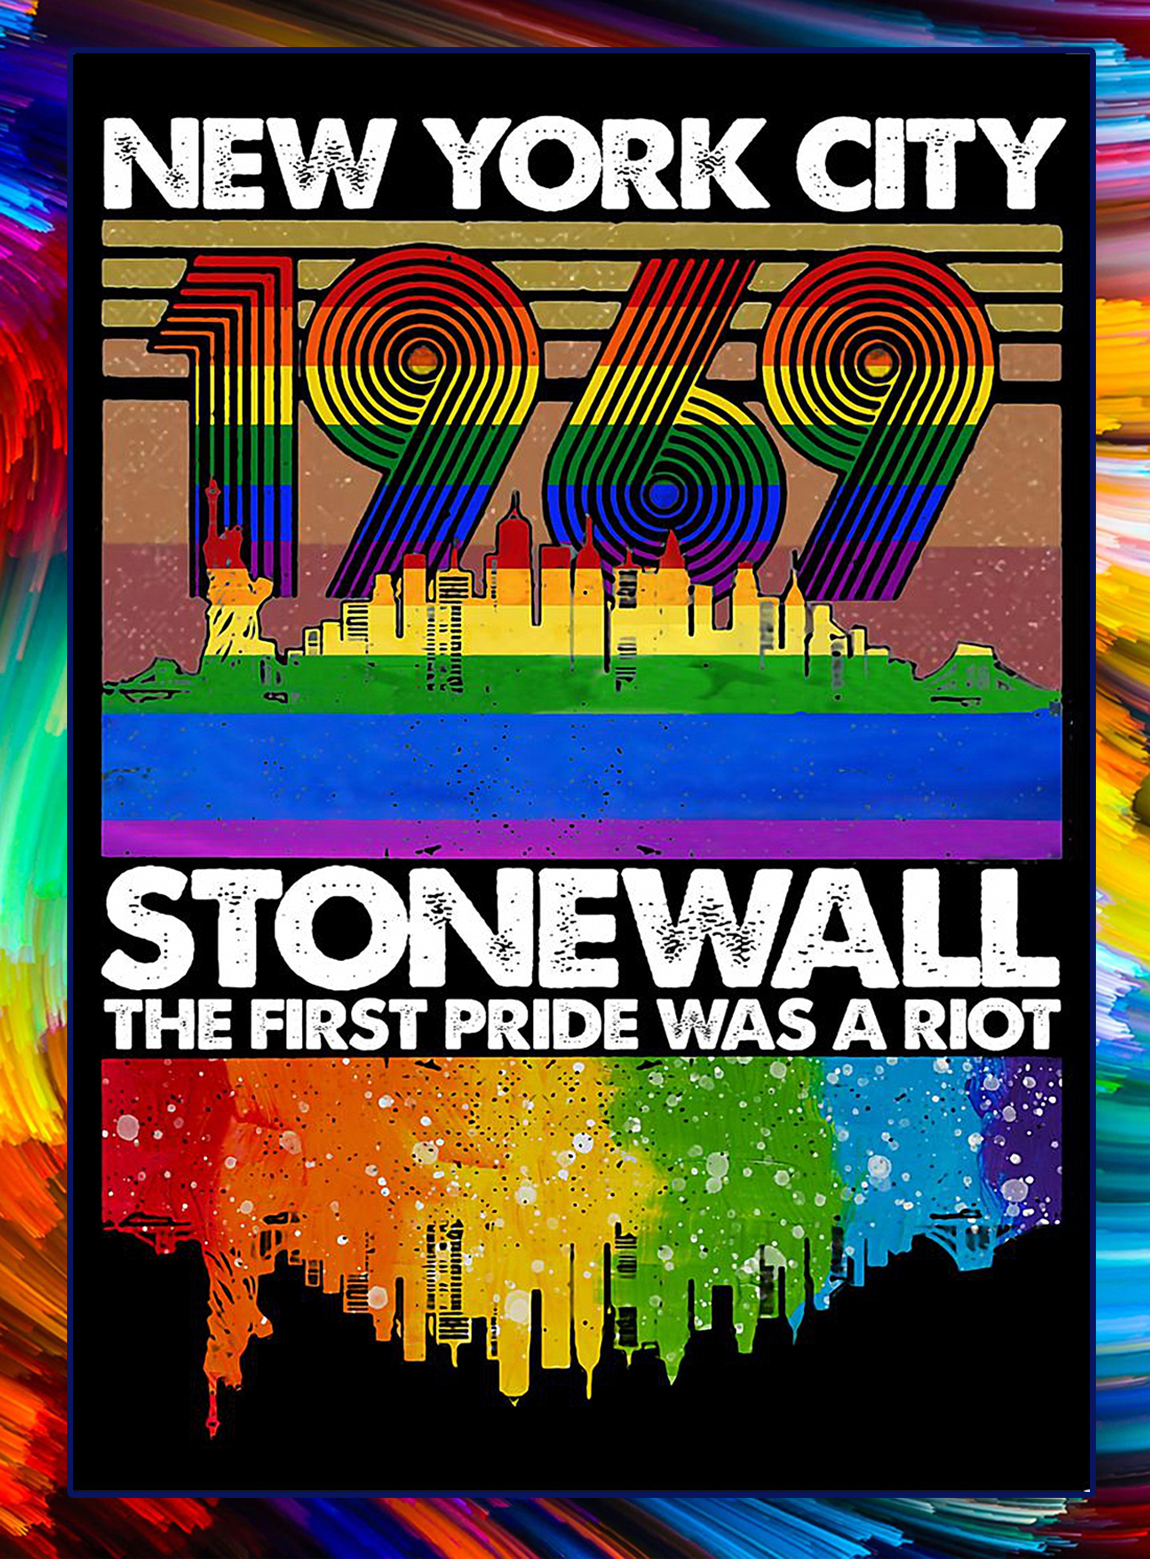 New york city 1969 stonewall riots poster - A2